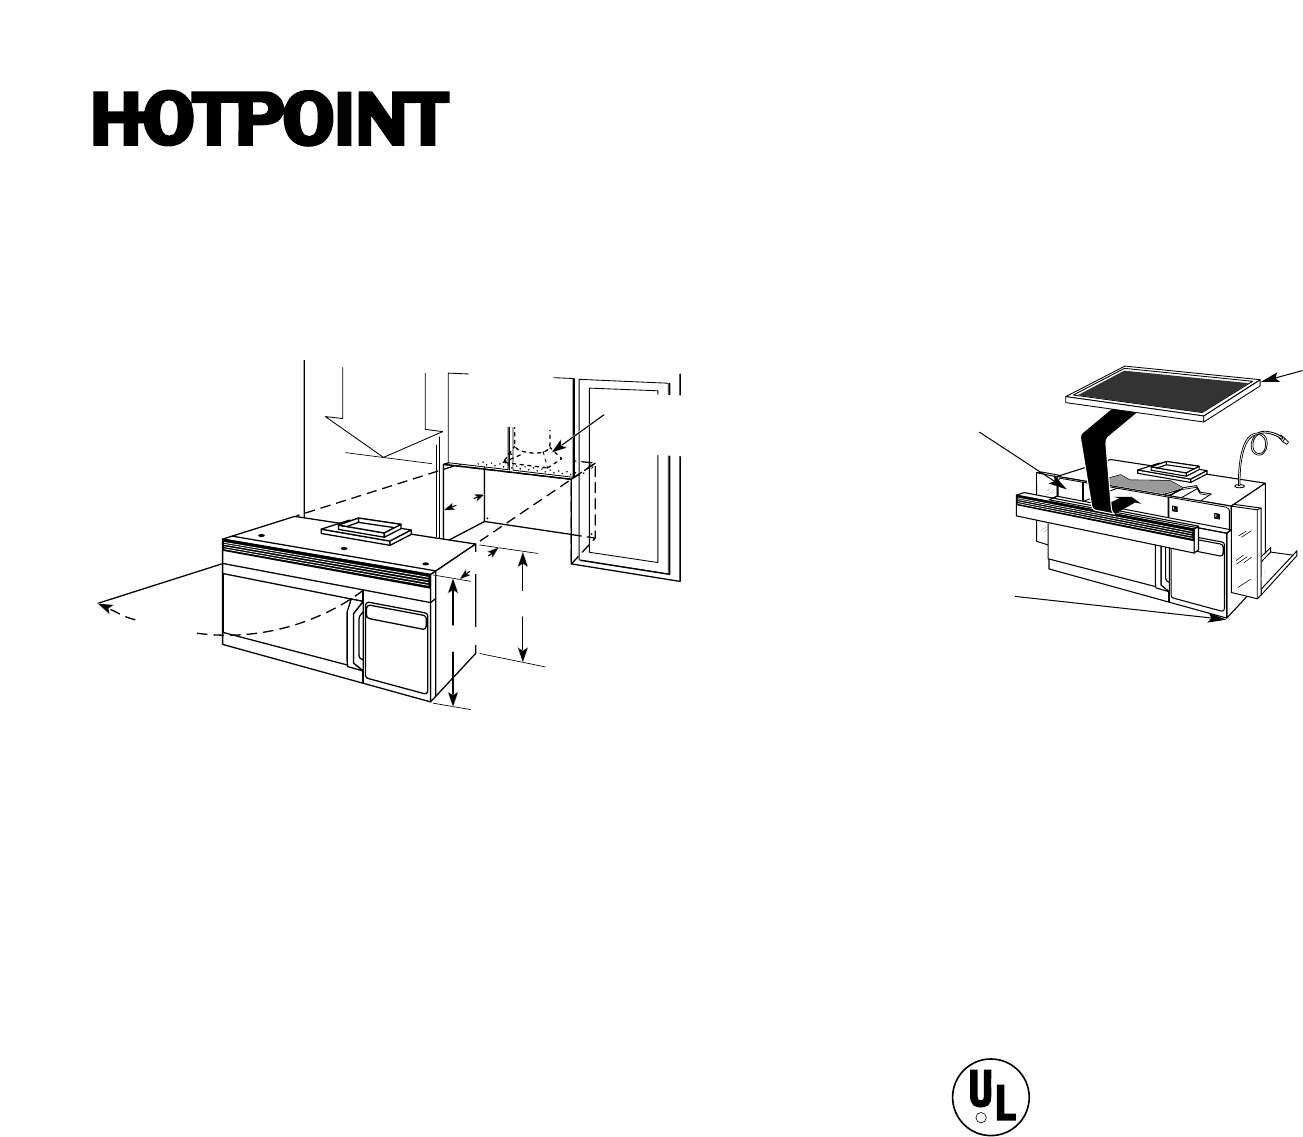 Hotpoint Microwave Oven Rvm Wc User Guide